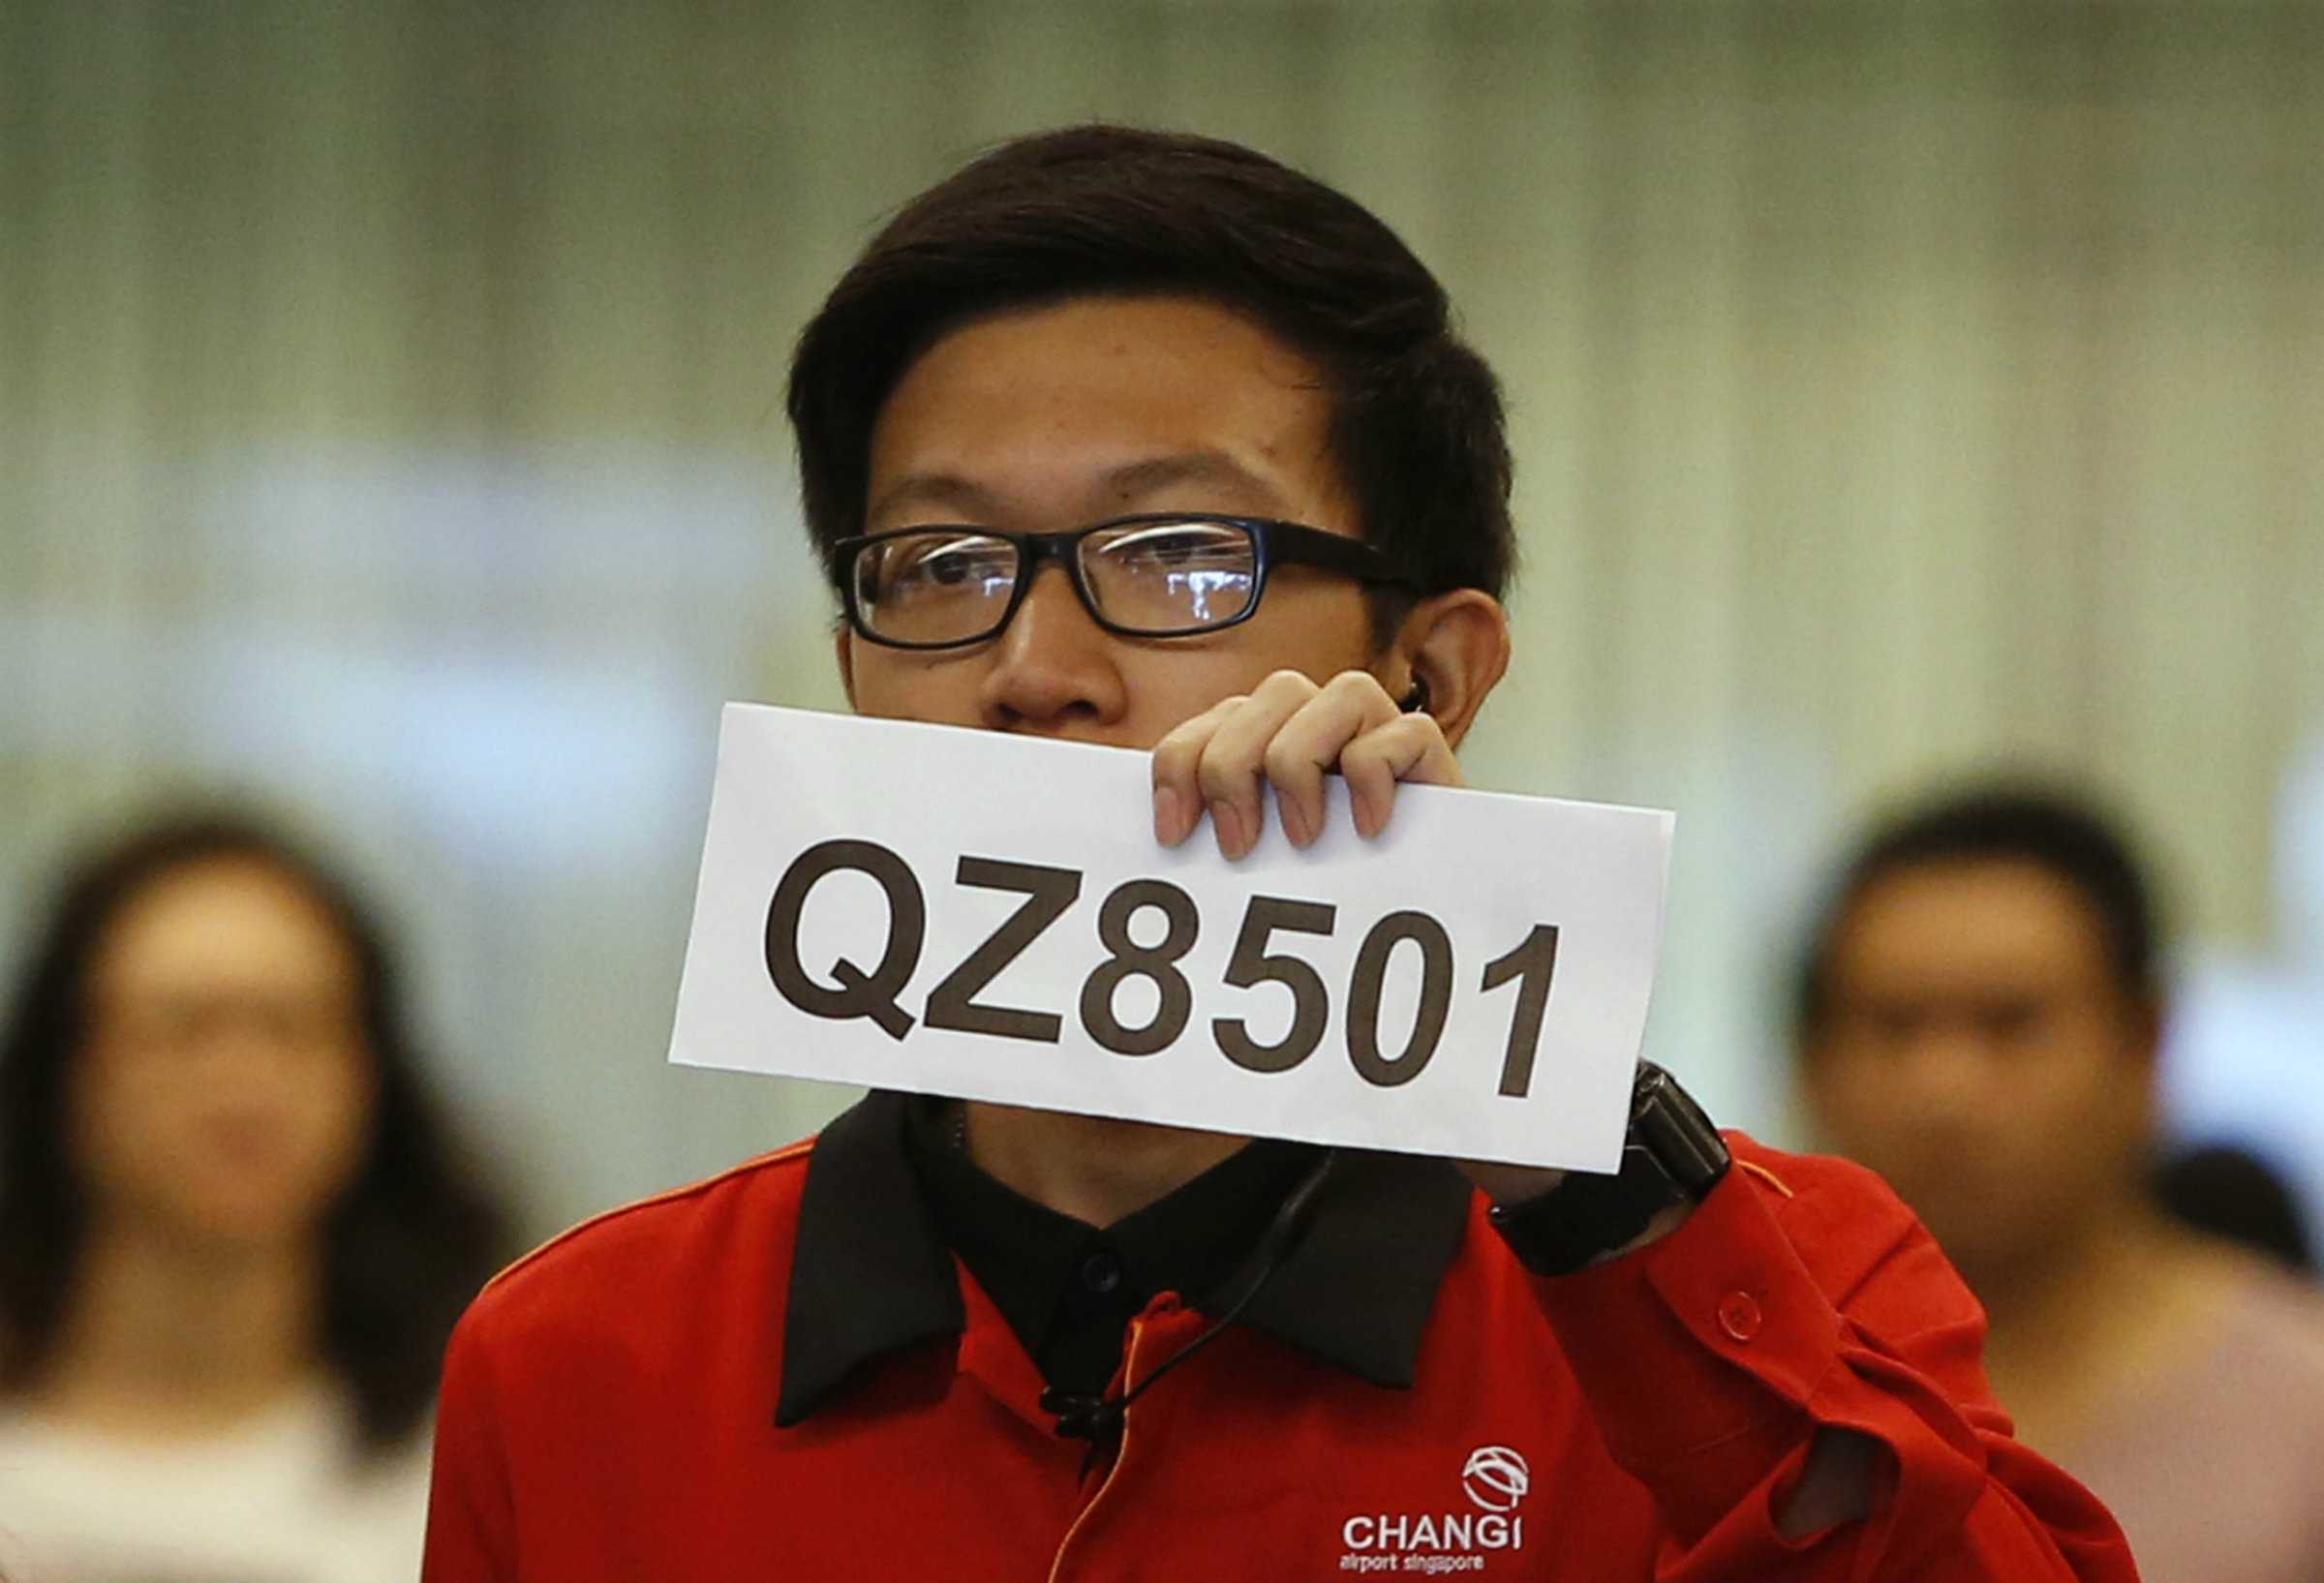 DATE IMPORTED: December 28, 2014 A Changi Airport staff holds up a sign to direct possible next-of-kins of passengers of AirAsia flight QZ 8501 from Indonesian city of Surabaya to Singapore, at Changi Airport in Singapore December 28, 2014. Indonesia's Transport Ministry official Hadi Mustofa said the aircraft, flight number QZ 8501, lost contact with the Jakarta air traffic control tower on Sunday at 6:17 a.m local time (2317 GMT). The Airbus 320-200 had 155 passengers and crew on board, another Indonesian Transport official said. REUTERS/Edgar Su (SINGAPORE - Tags: ENVIRONMENT SOCIETY TRANSPORT)